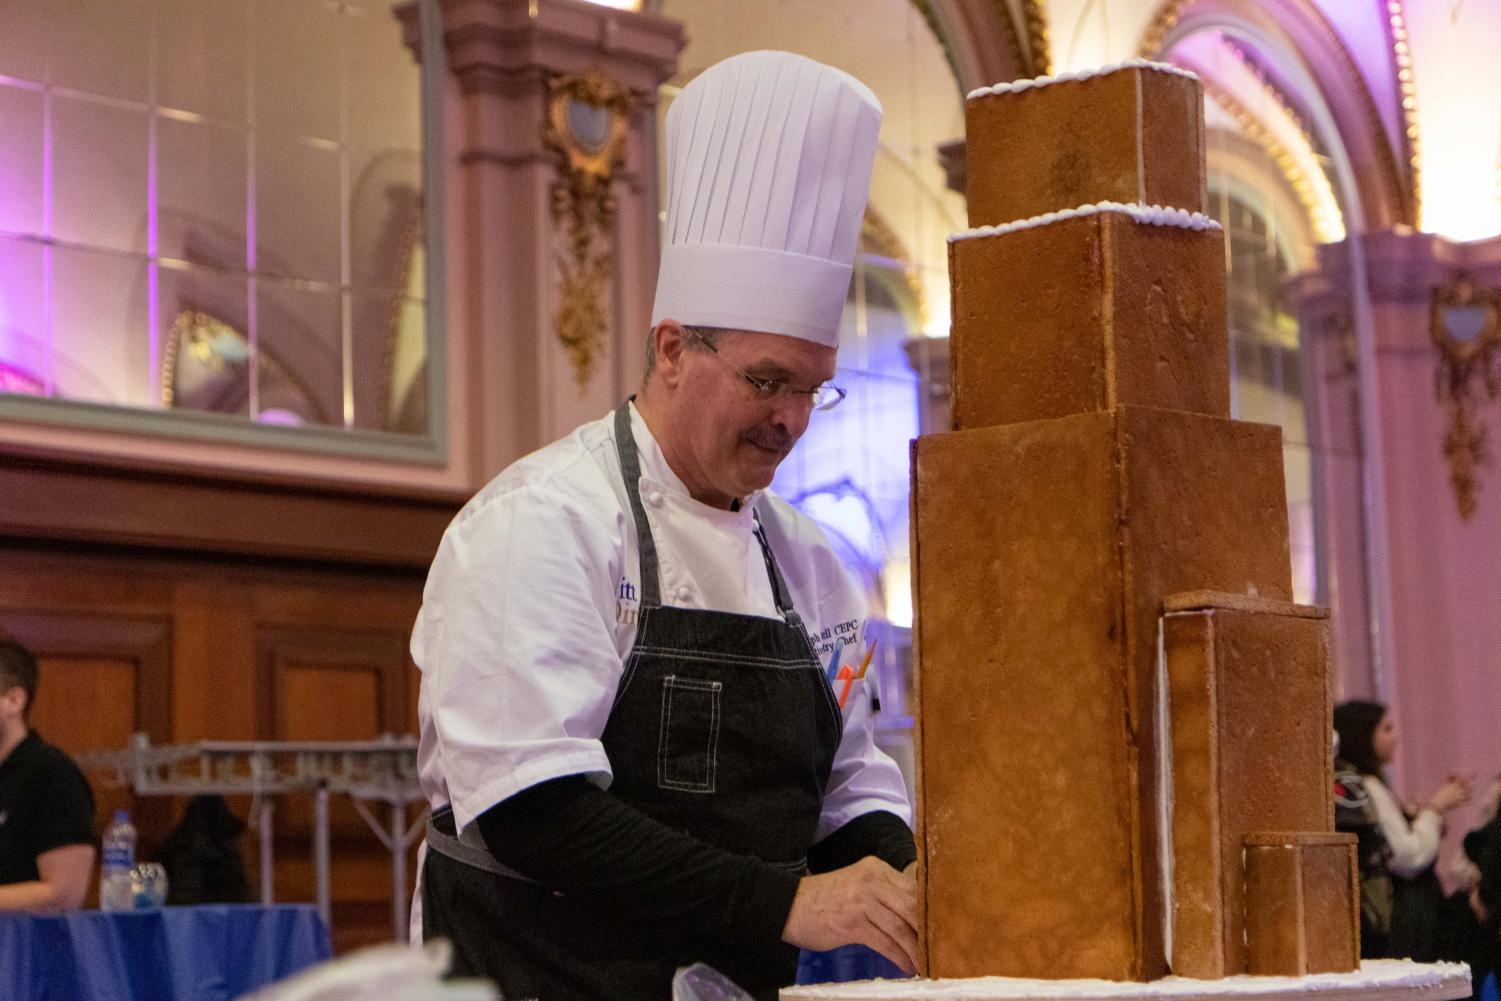 Chef Randolph Russell from Sodexo constructs a model Cathedral of Learning out of gingerbread.